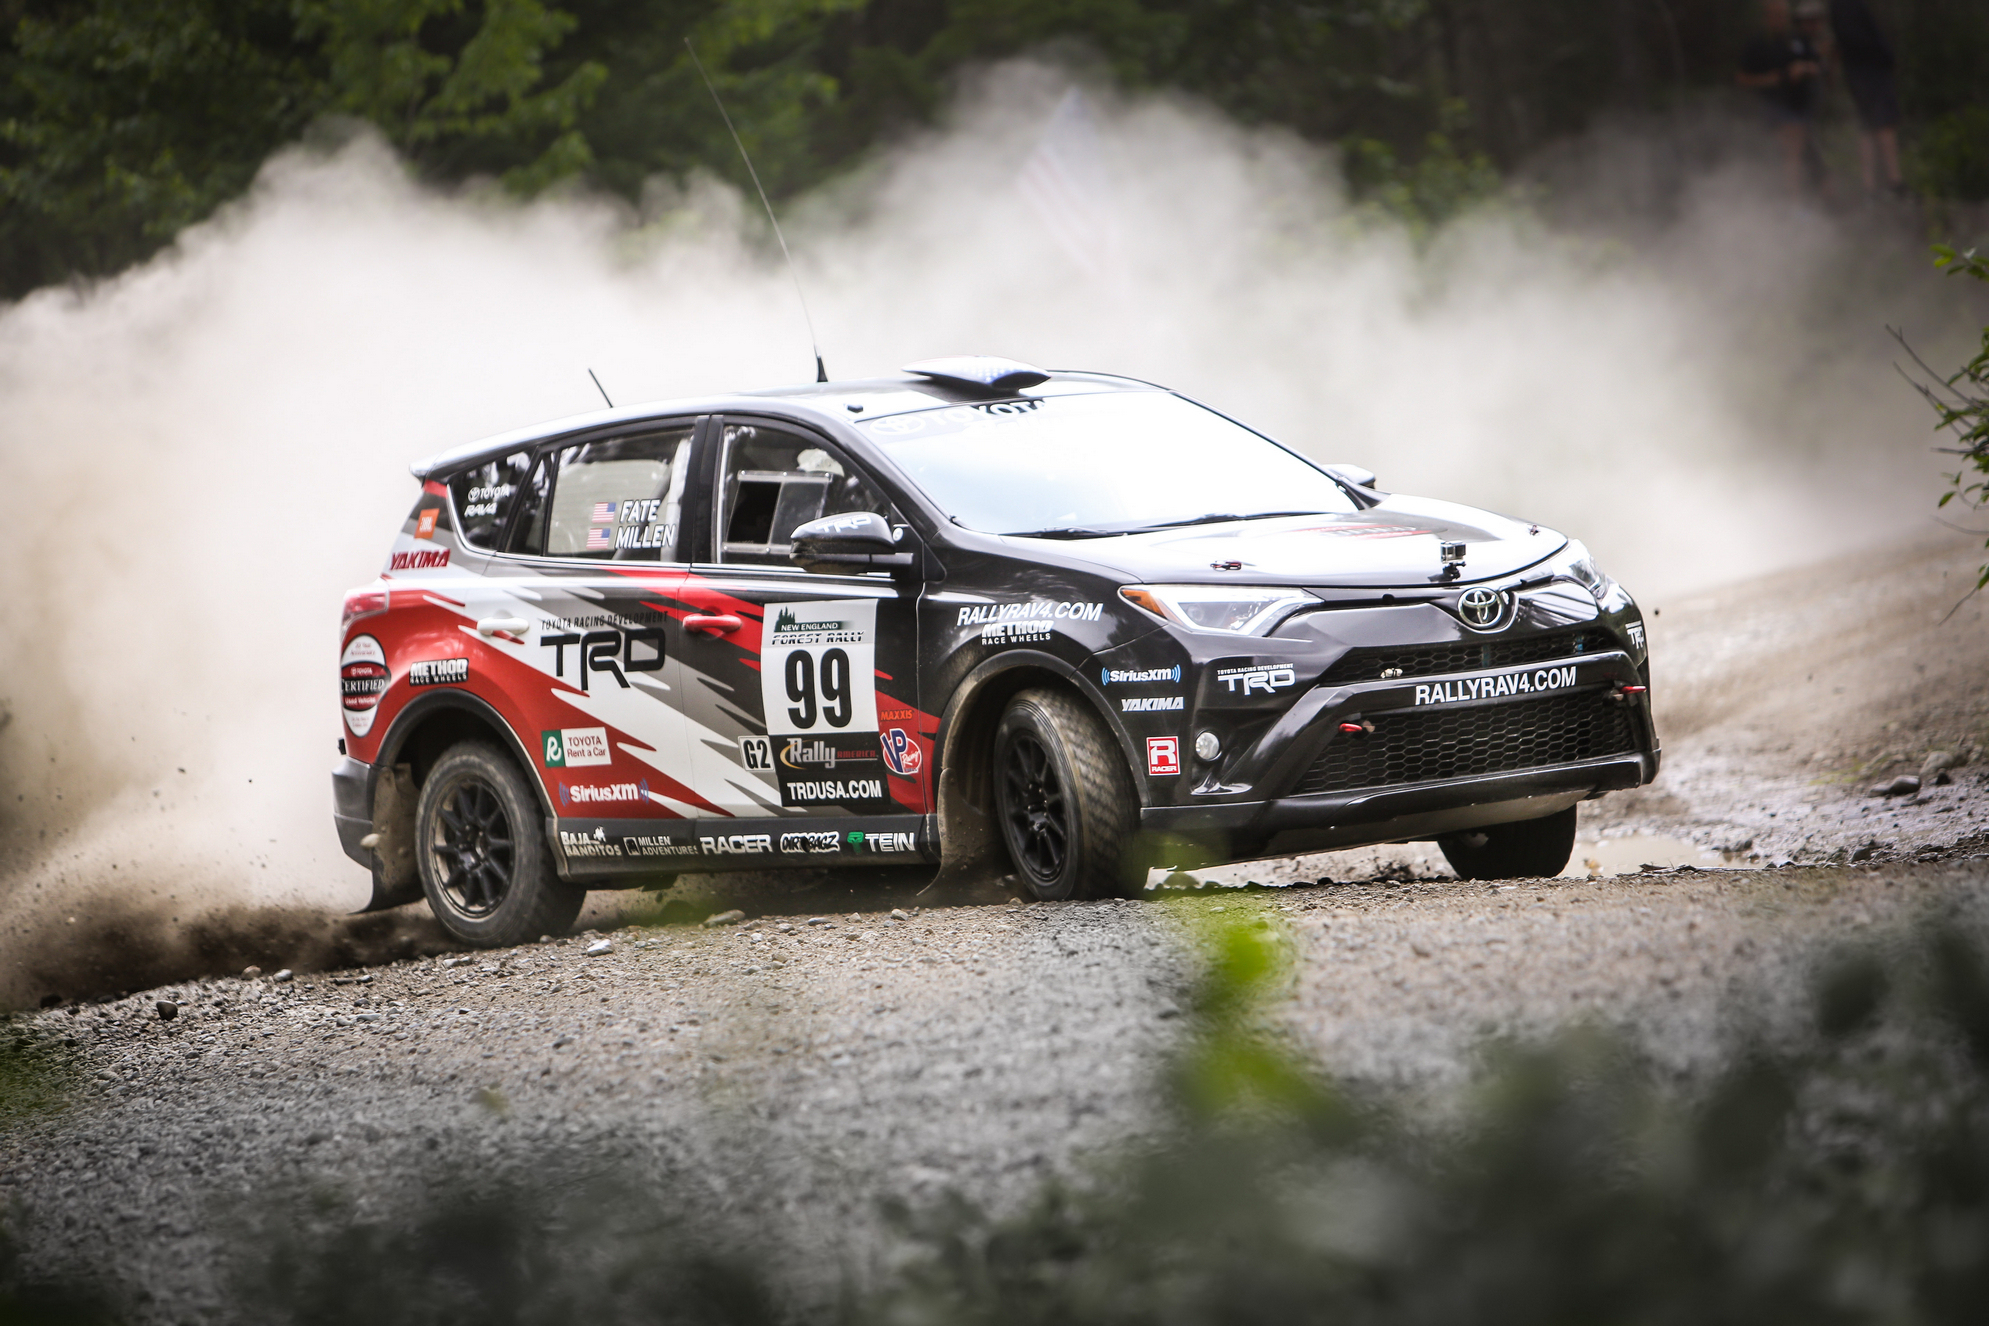 Rally RAV4 Heads to Minnesota for Ojibwe Forests Rally © Toyota Motor Corporation